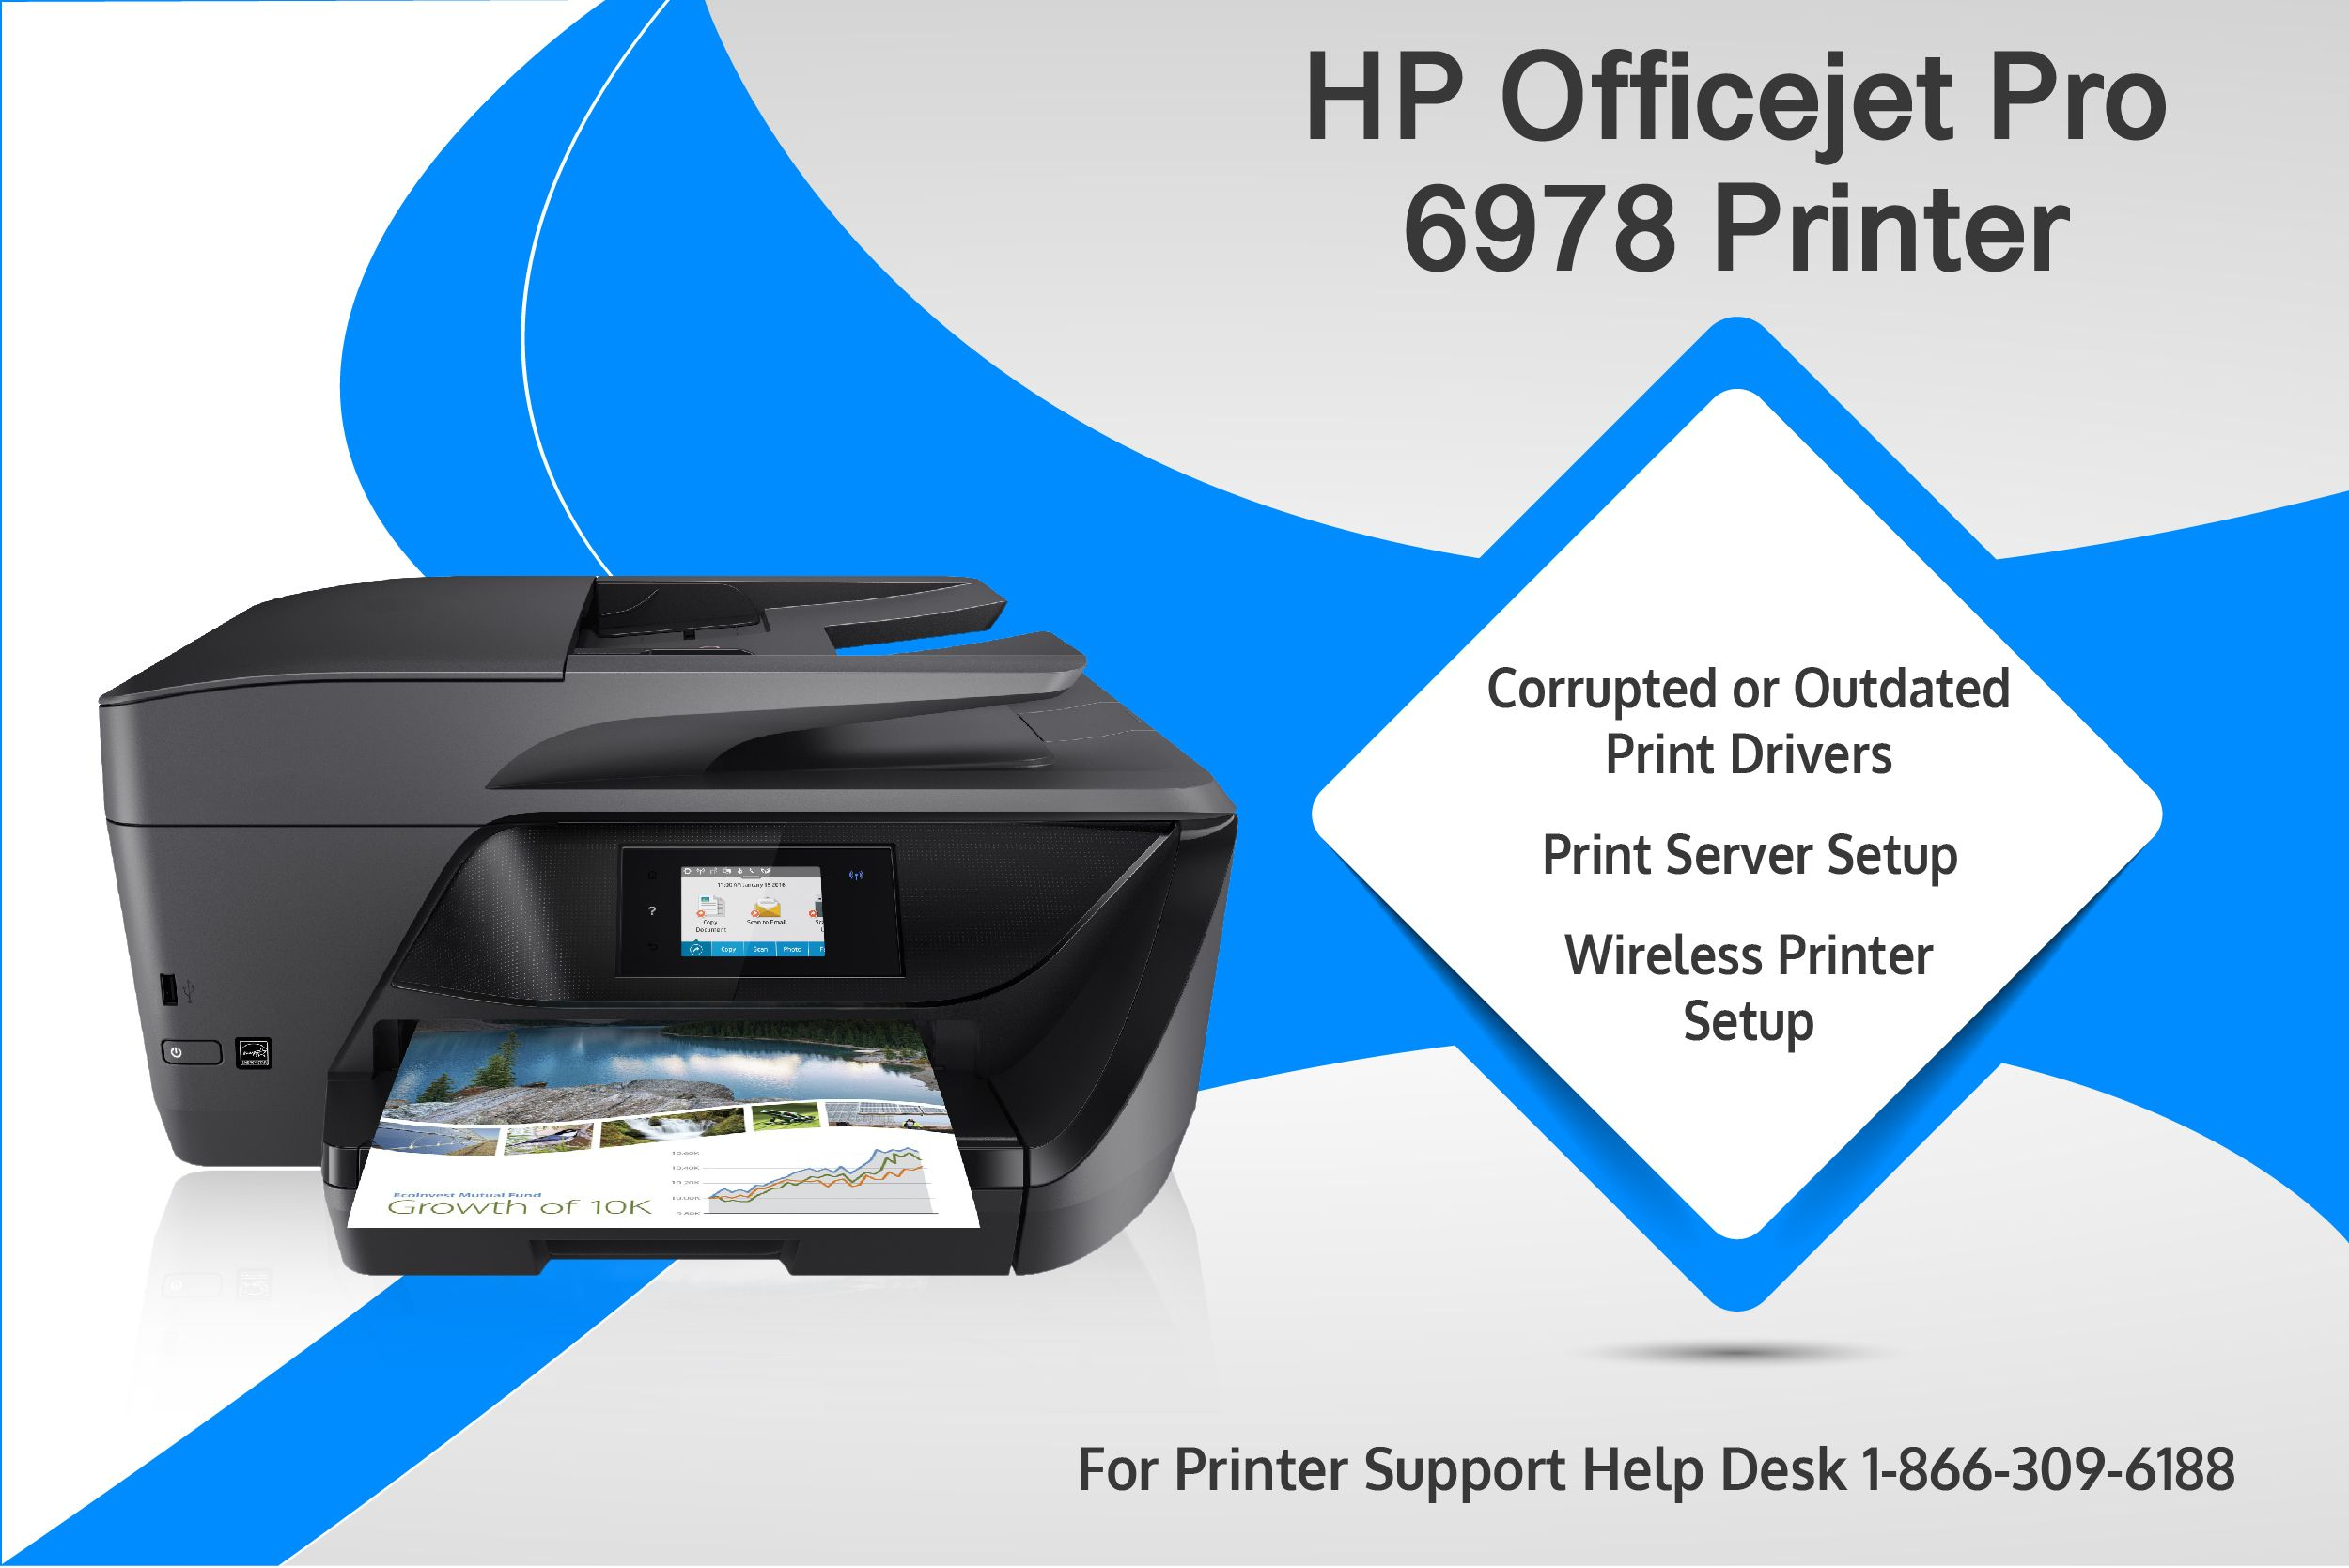 123 hp com/ojpro6978 - Quick & Easy Step by Step Guidance